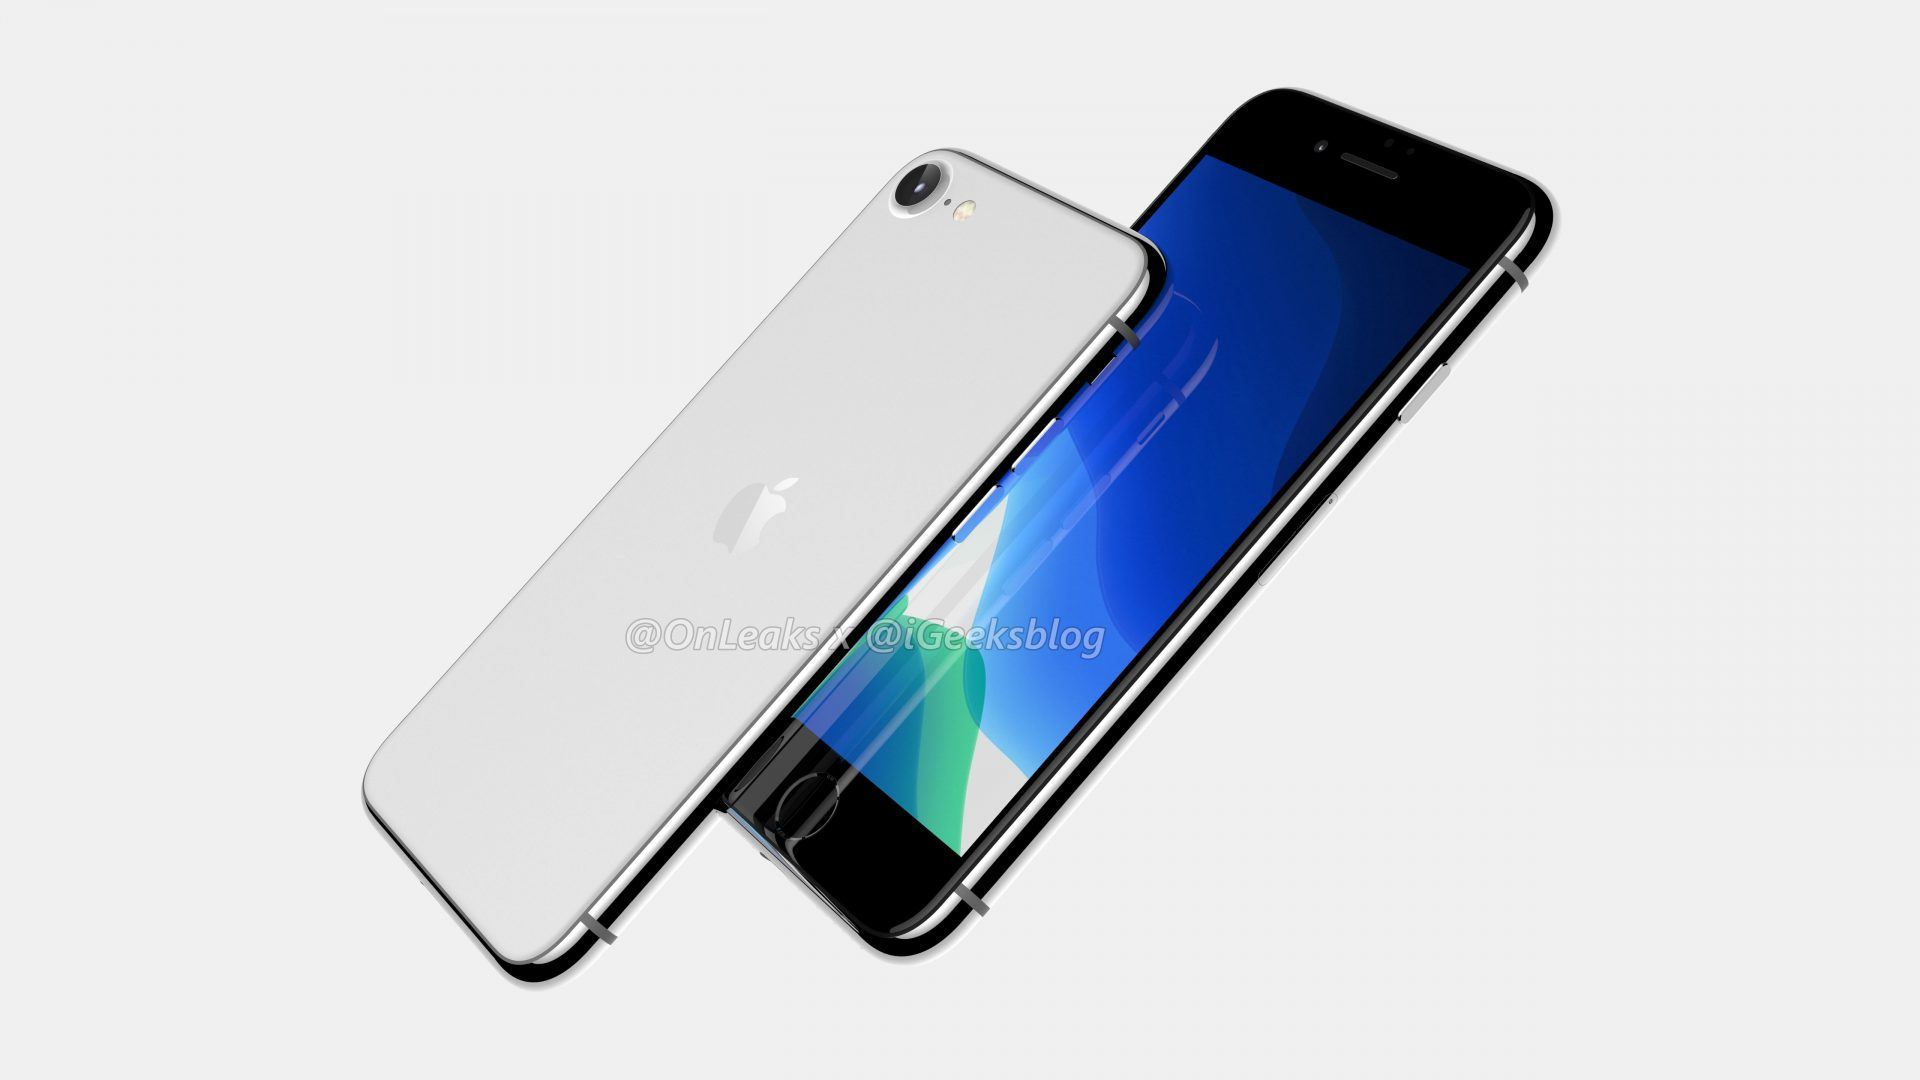 iPhone 8 SE renders